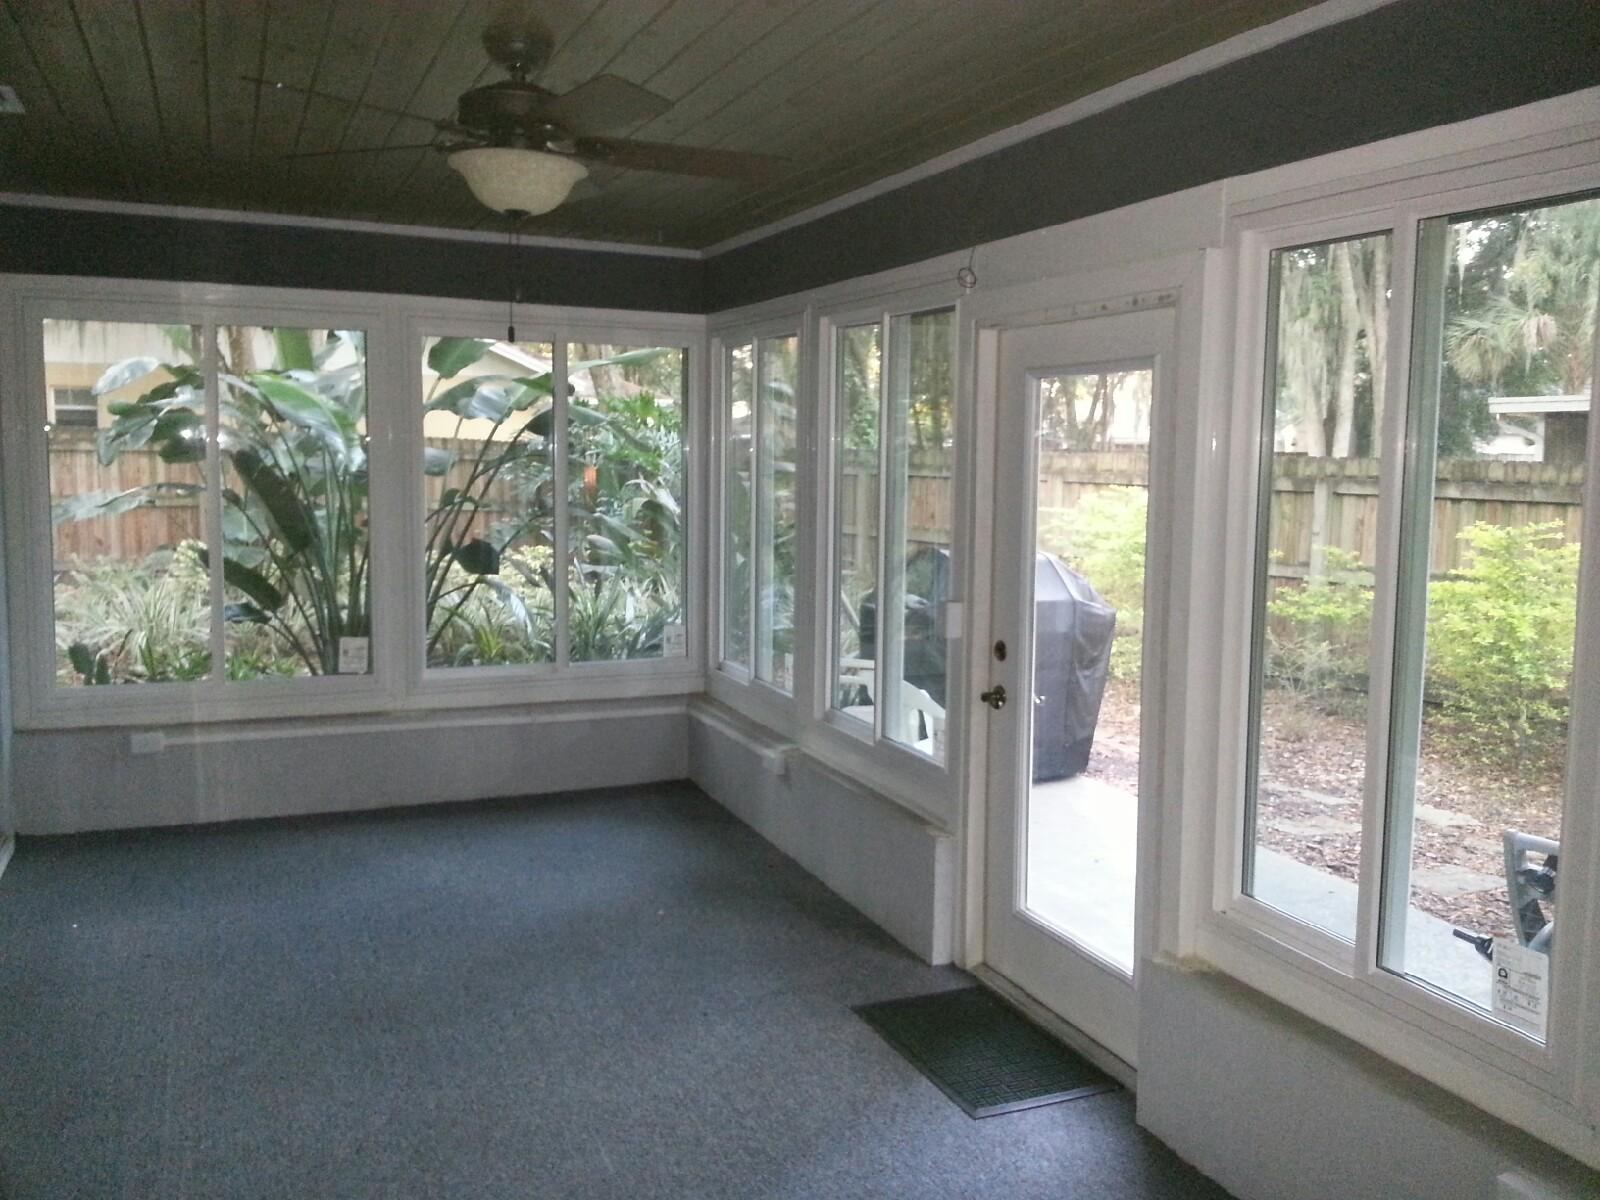 Exceptional Sunrooms | Screen Rooms | Patio Roof Panels | Precise Professionals |Tampa,  FL U0026 Throughout The Bay Area: 813 754 7930